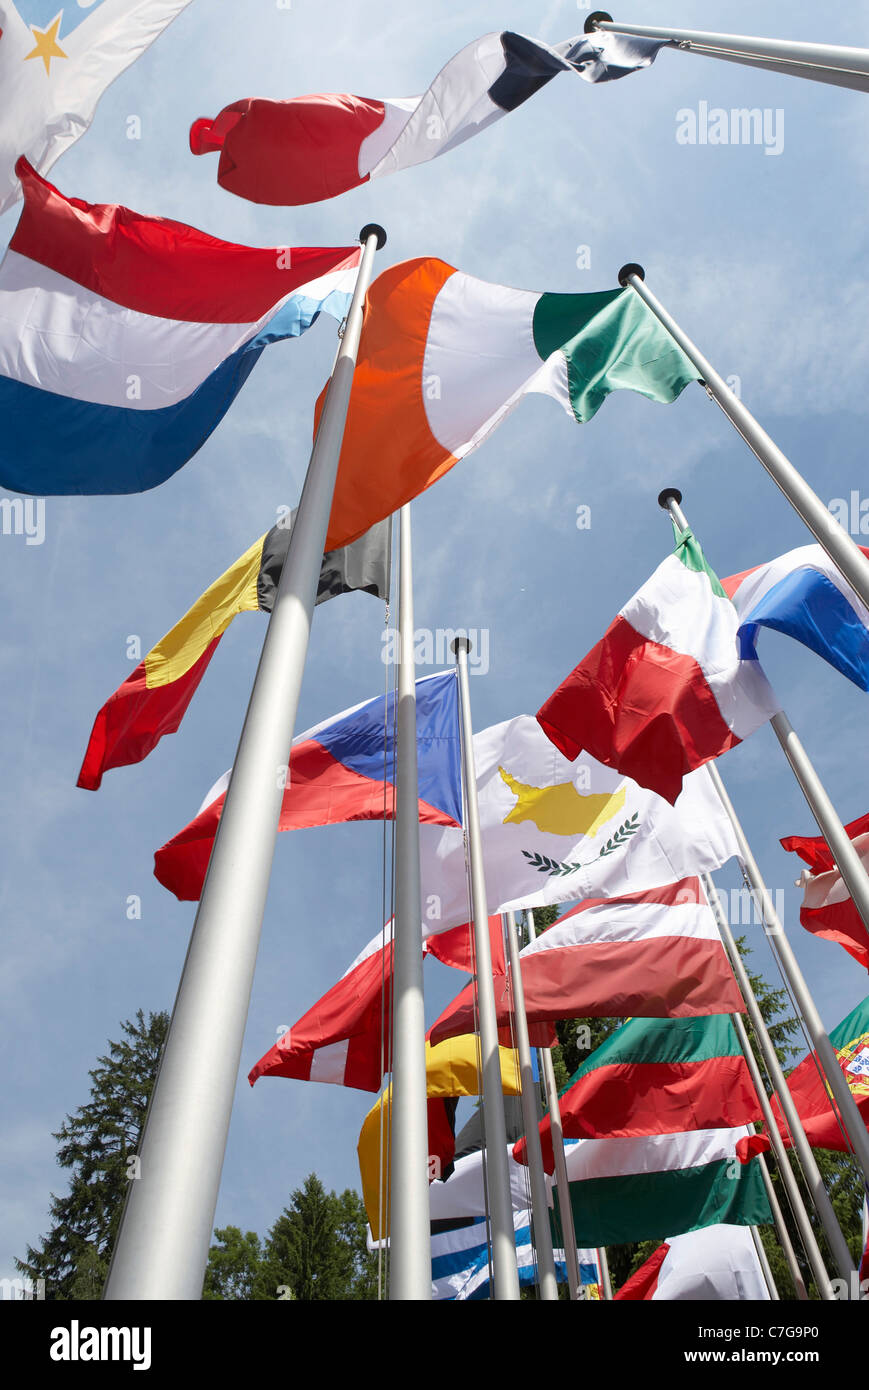 Luxembourg Country. Chateau de Senningen. European flags on Flagpoles. - Stock Image